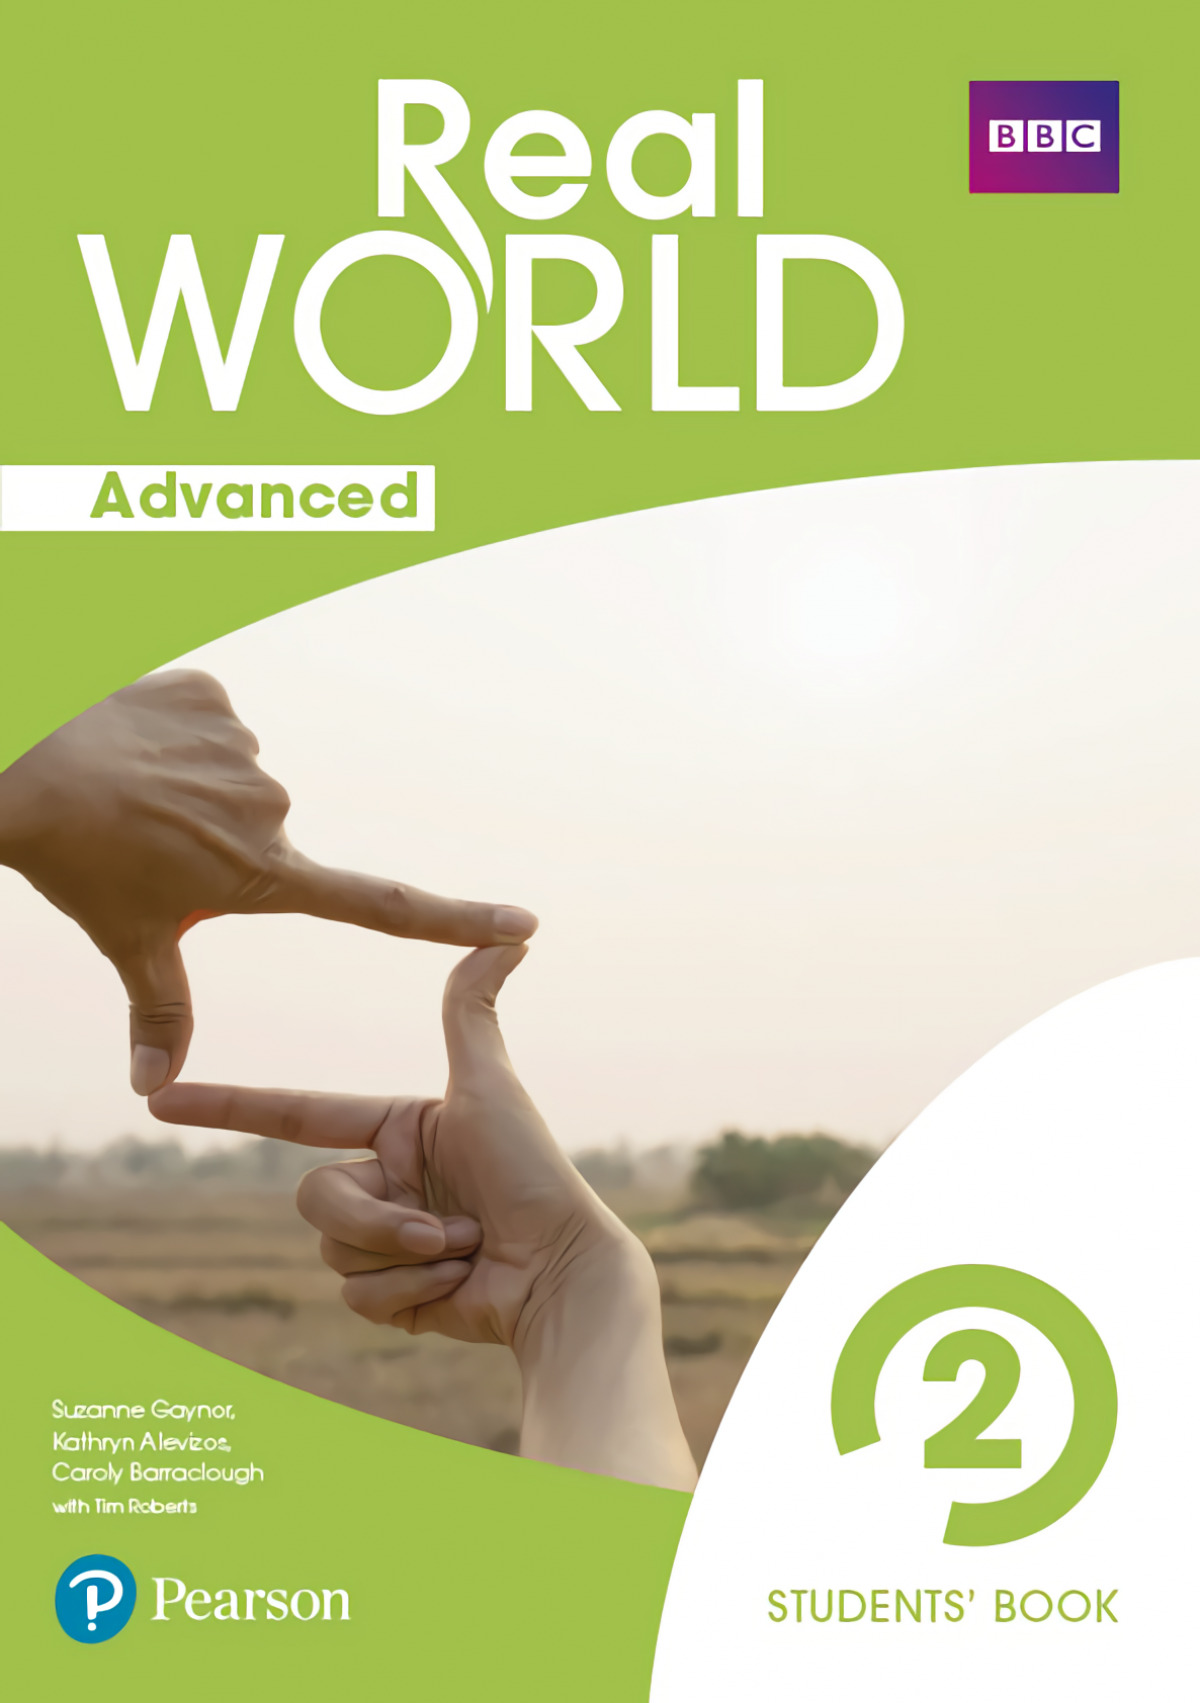 REAL WORLD ADVANCED 2. STUDENT'S BOOK WITH ONLINE AREA +VOCABULARY APP